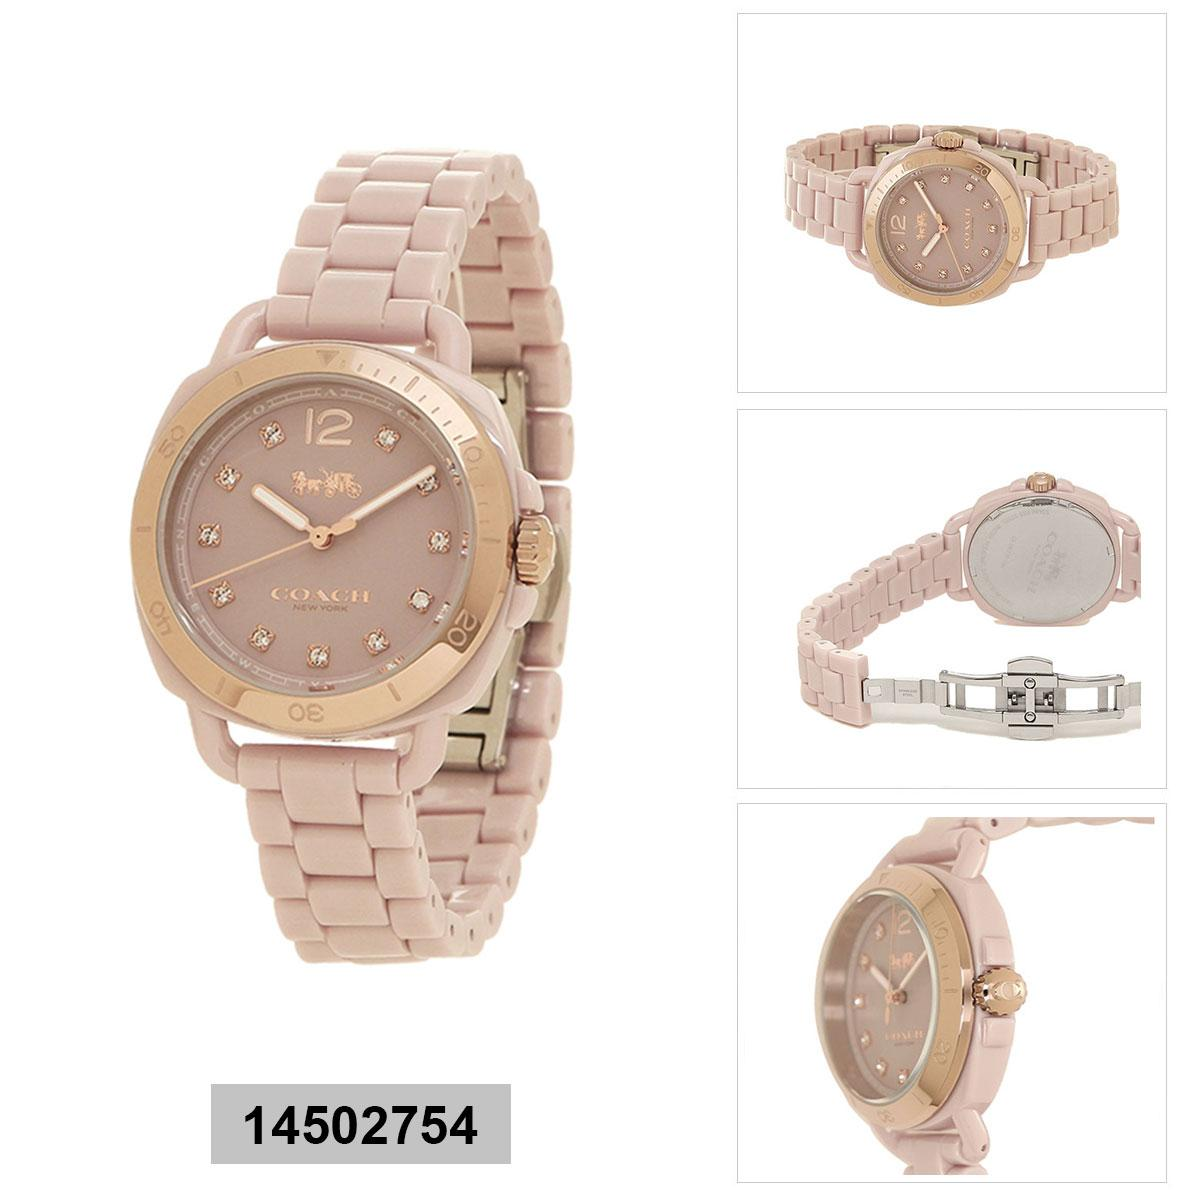 Kelebihan Coach Women Rubber Watch Pink And Purple 14502091 Nwt Jam Authentic Tatum Casing Baja Tahan Karat Keramik Gelang Wanita Warranty 14502754